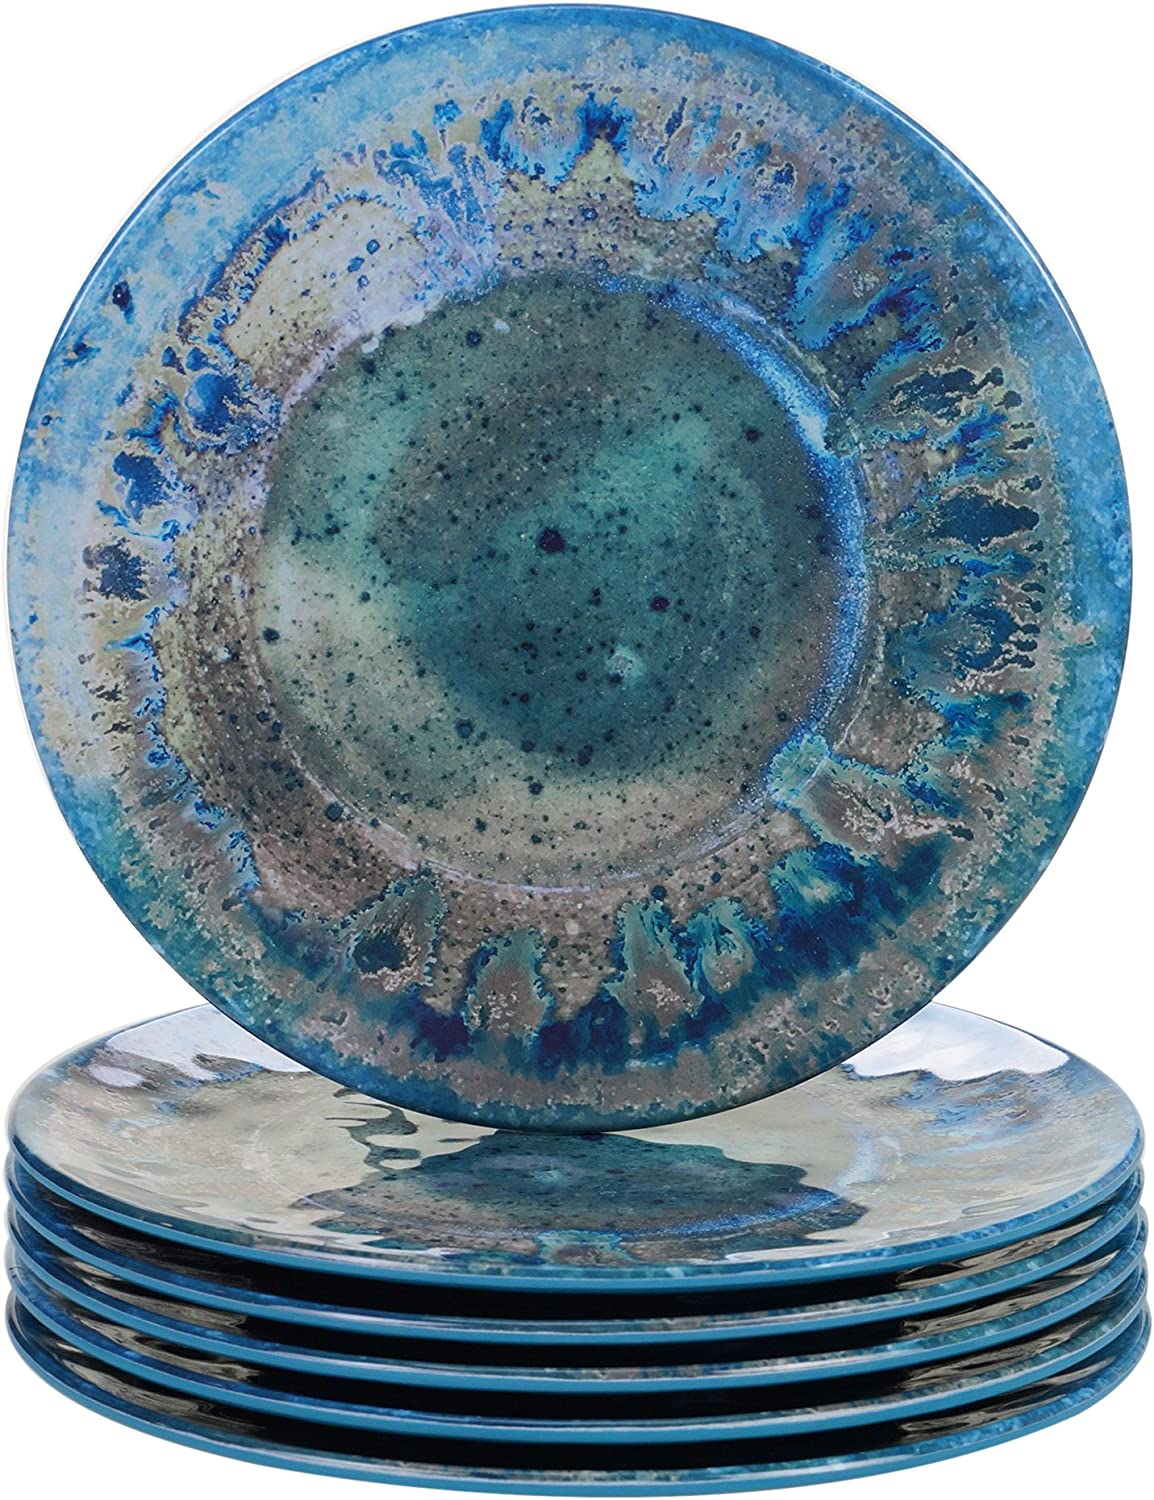 "Certified International Radiance Teal Melamine 8.5""Salad/Dessert Plate, Set of 6"